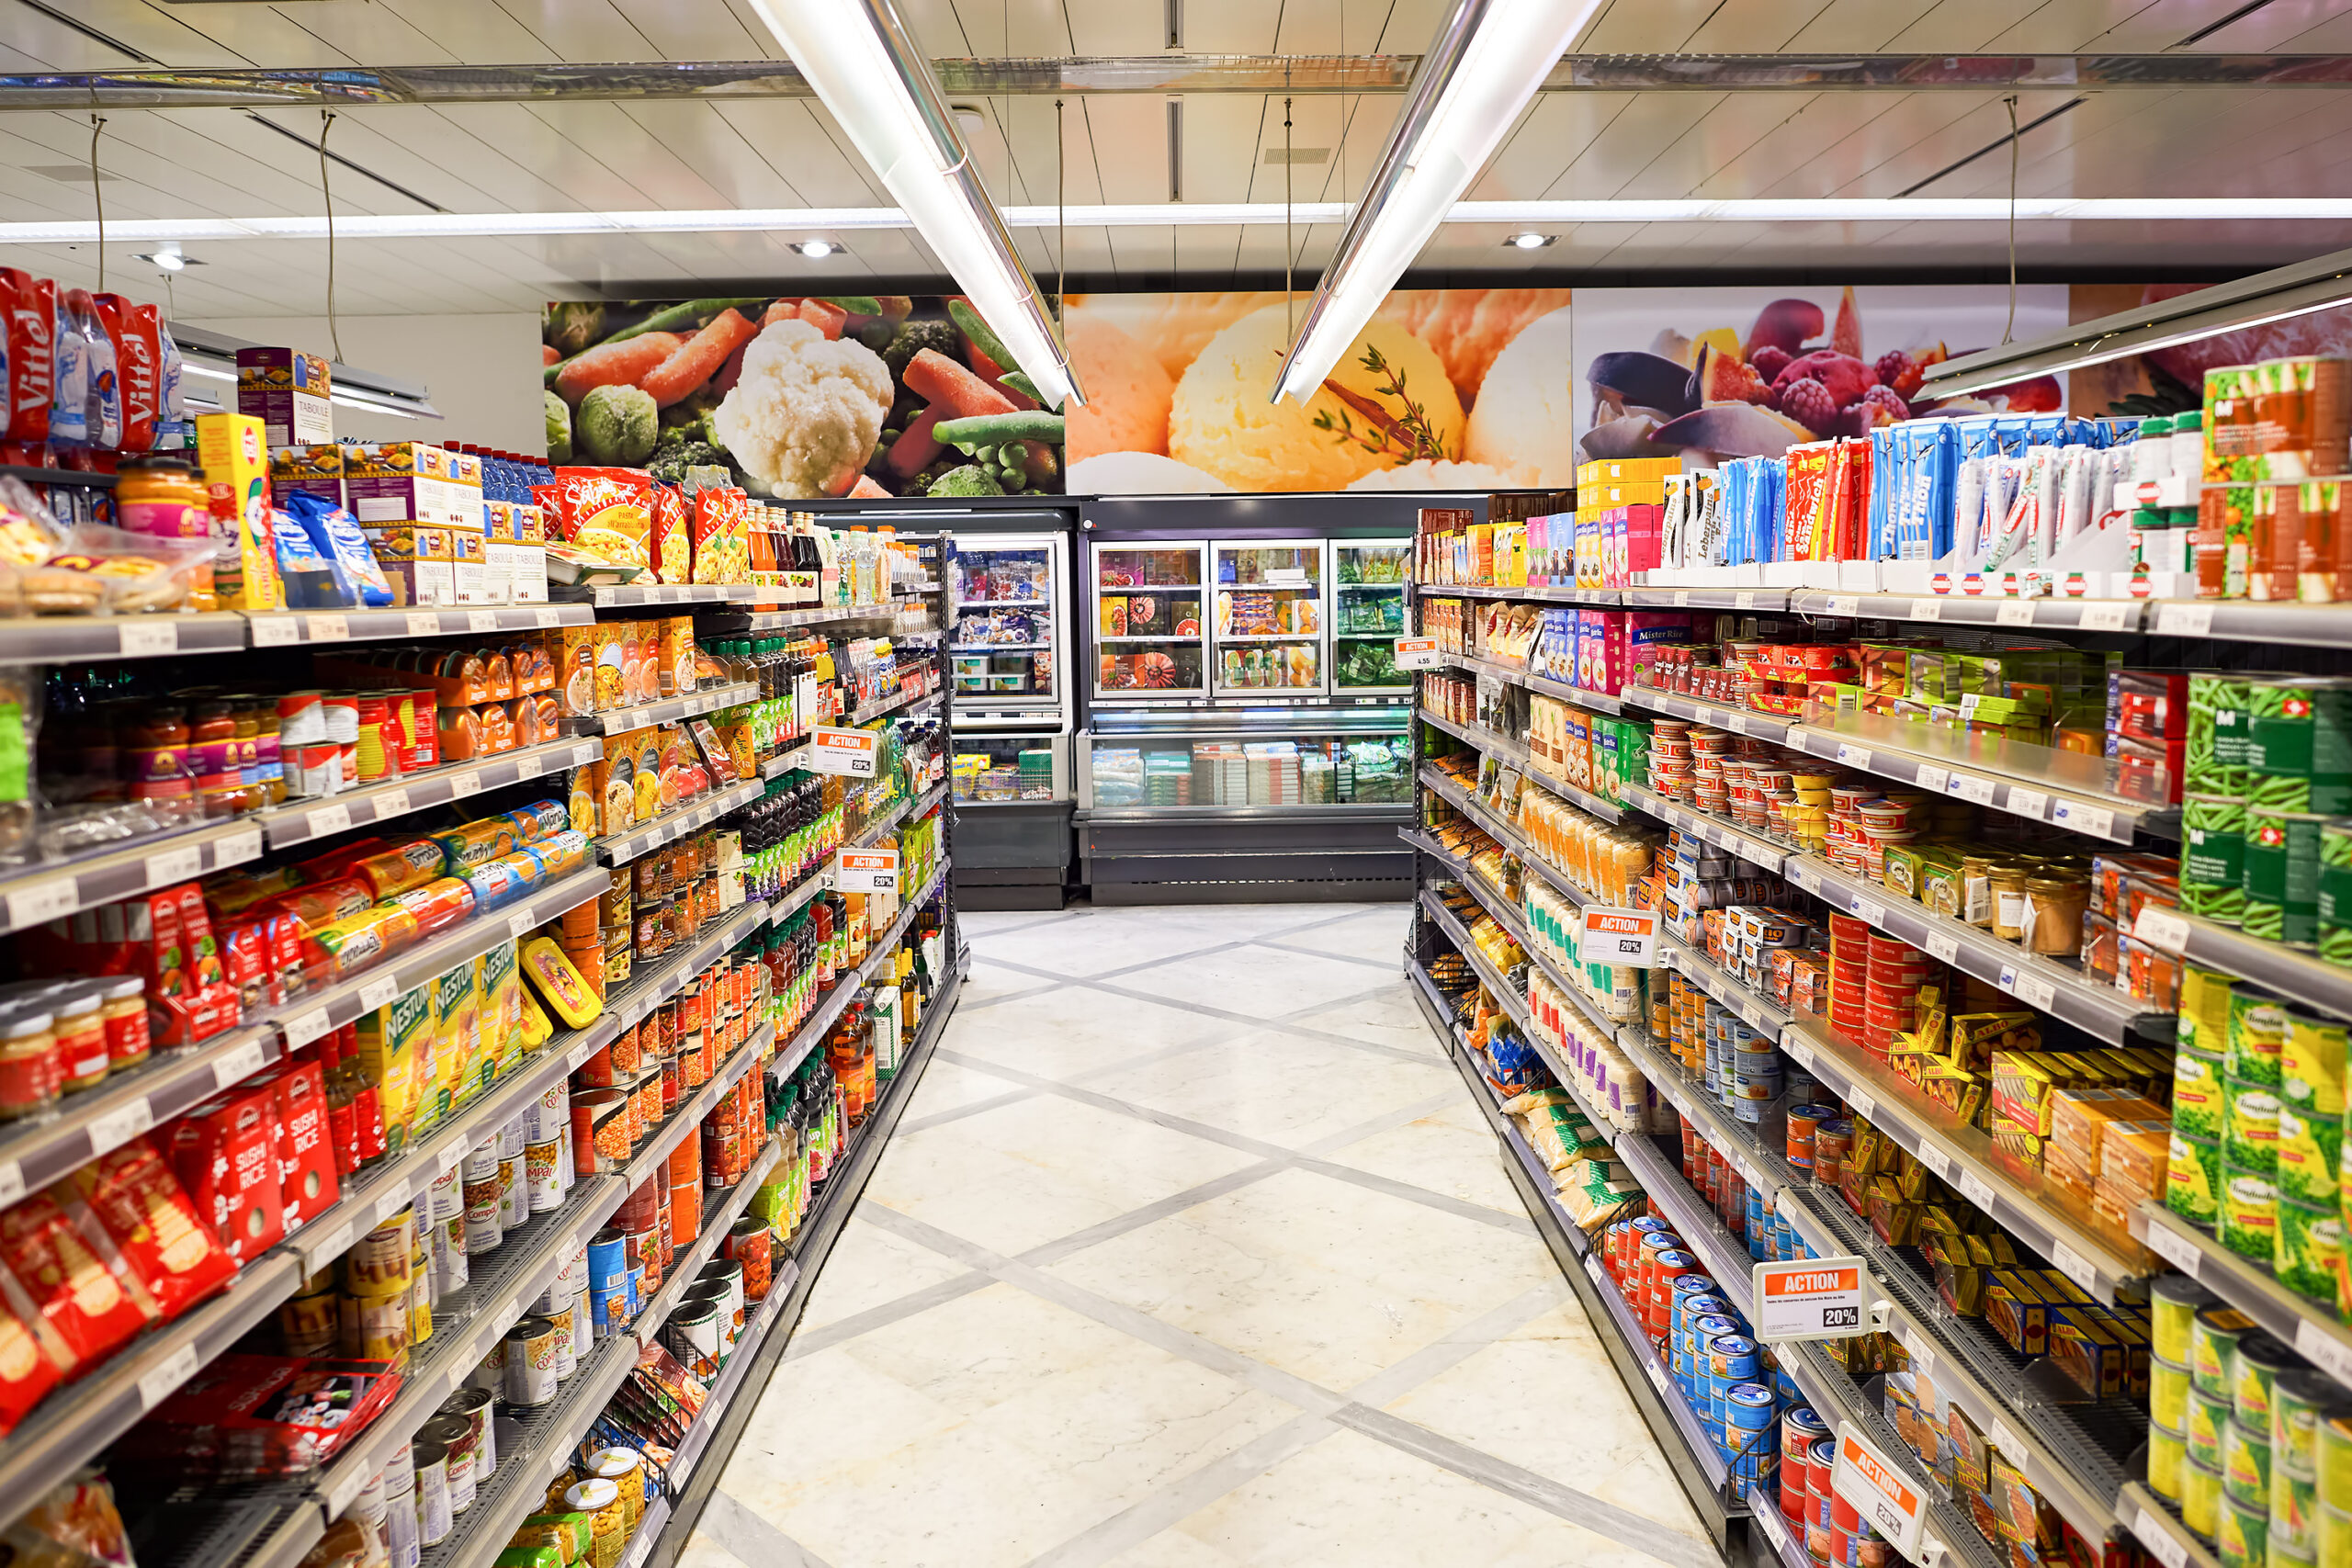 What Are the Different Sections of a Grocery Store